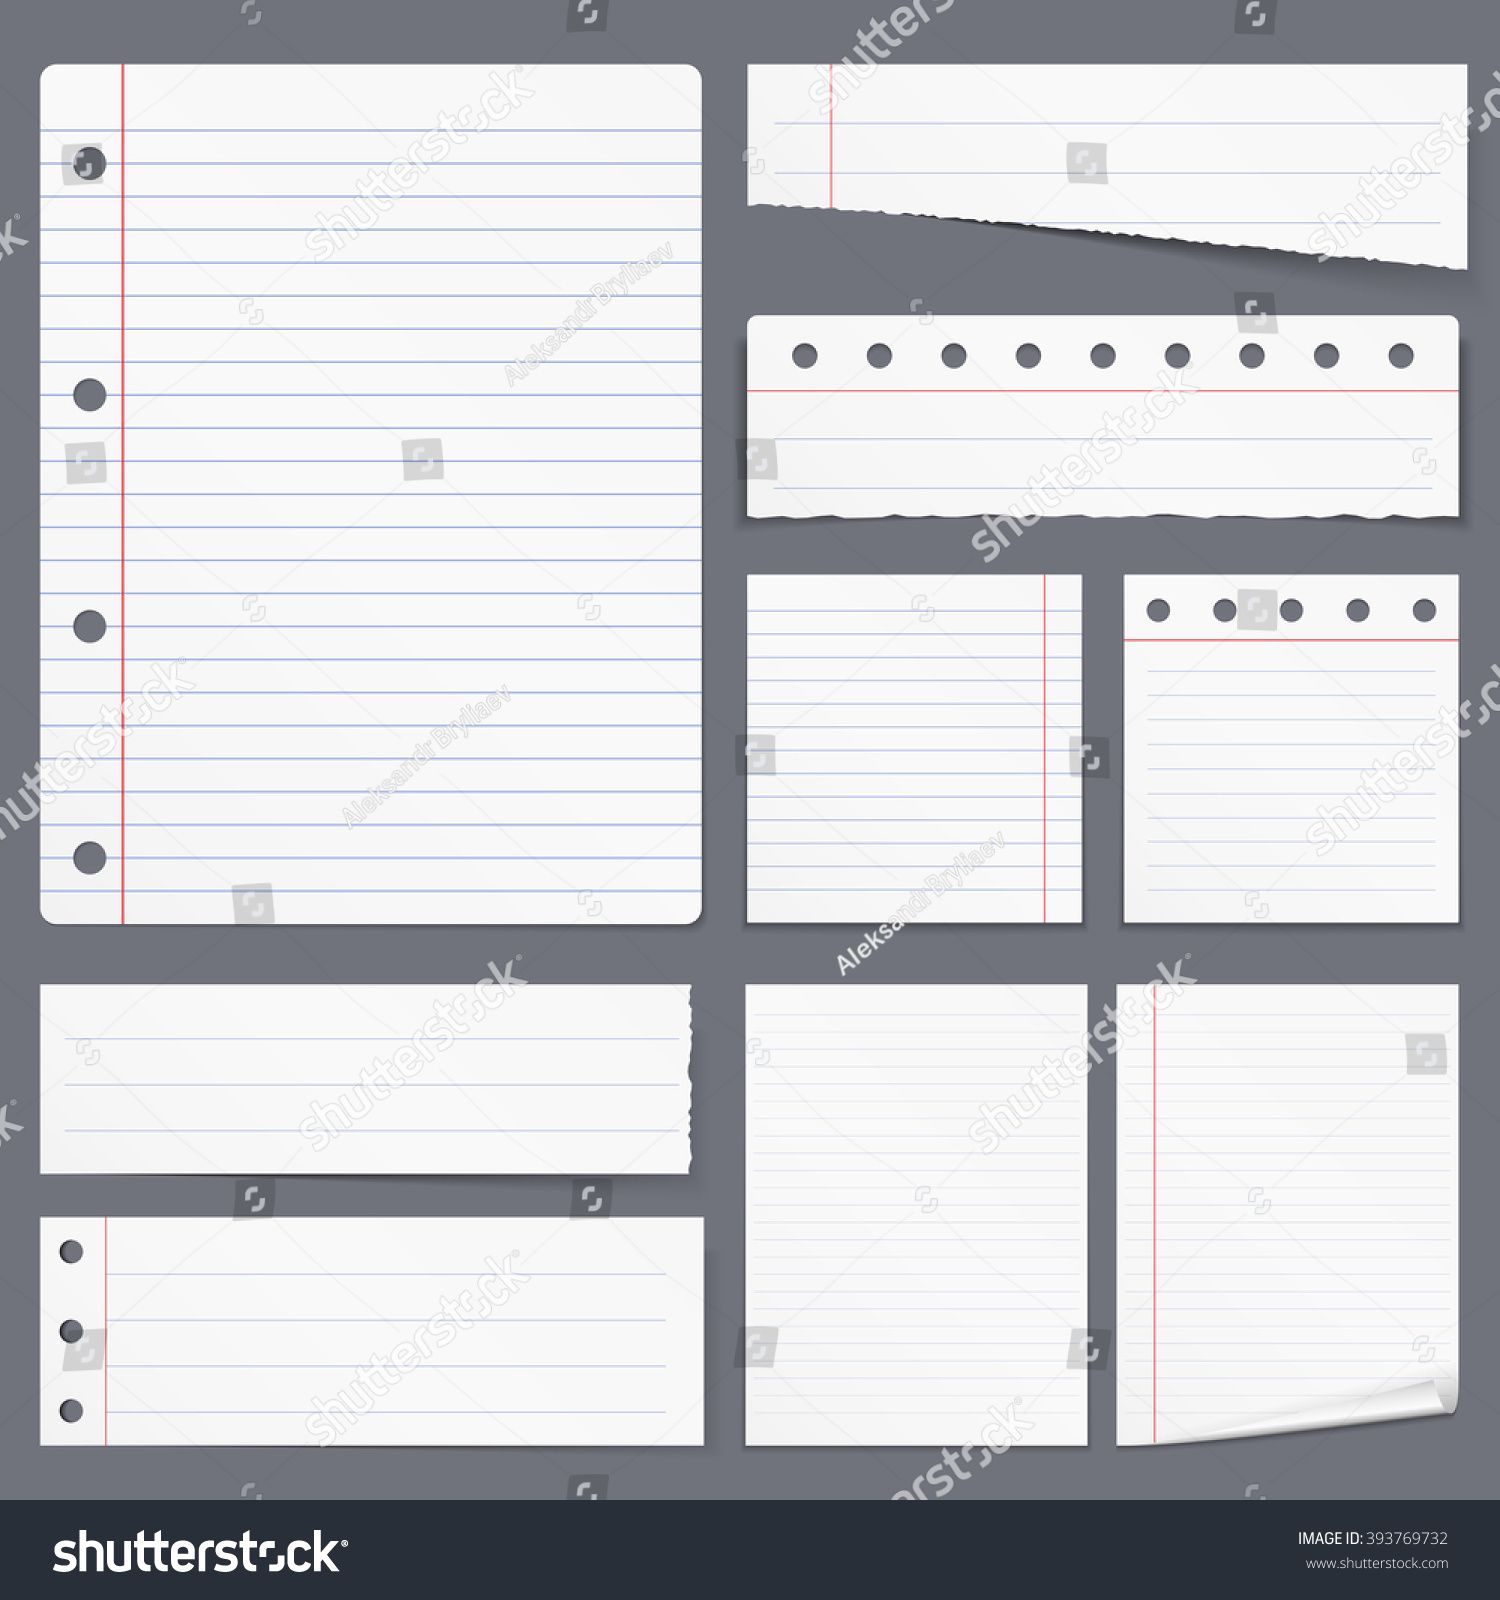 blank white lined paper notebook paper stock vector (royalty free